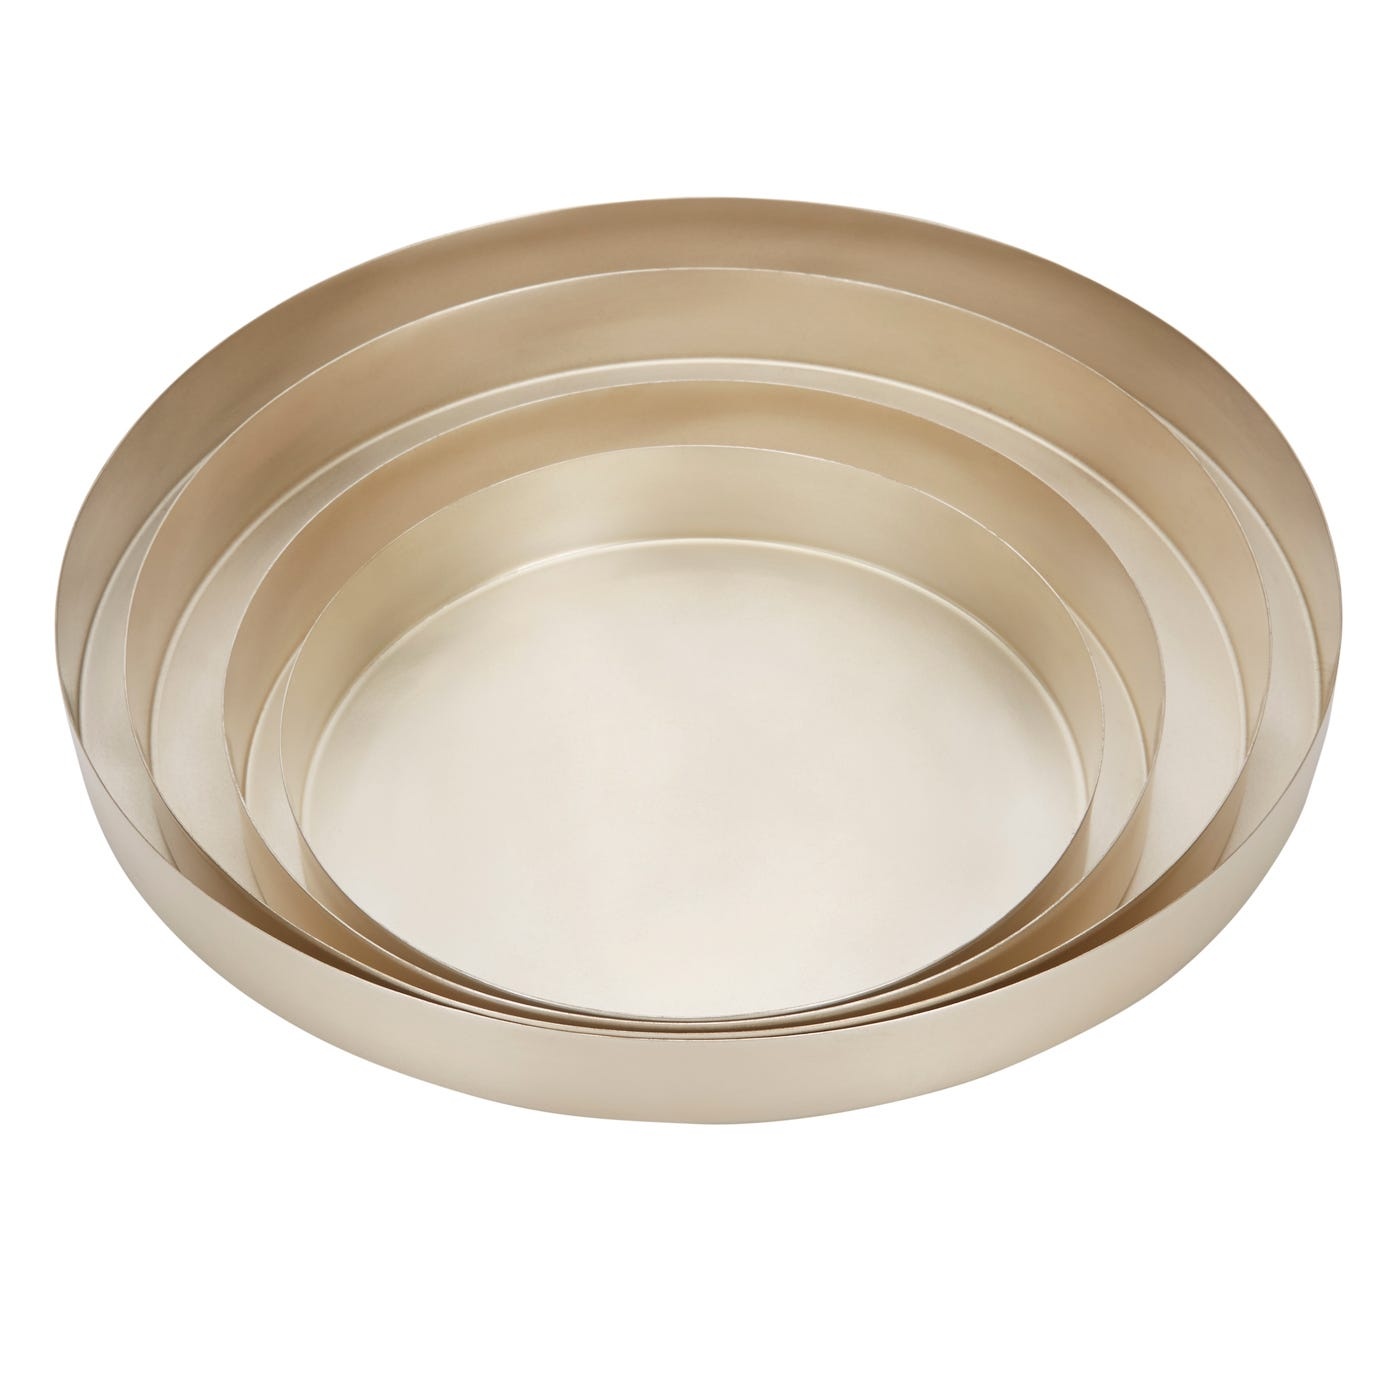 Tom dixon orbit trays in silver discontinued heal s for Bespoke canape trays